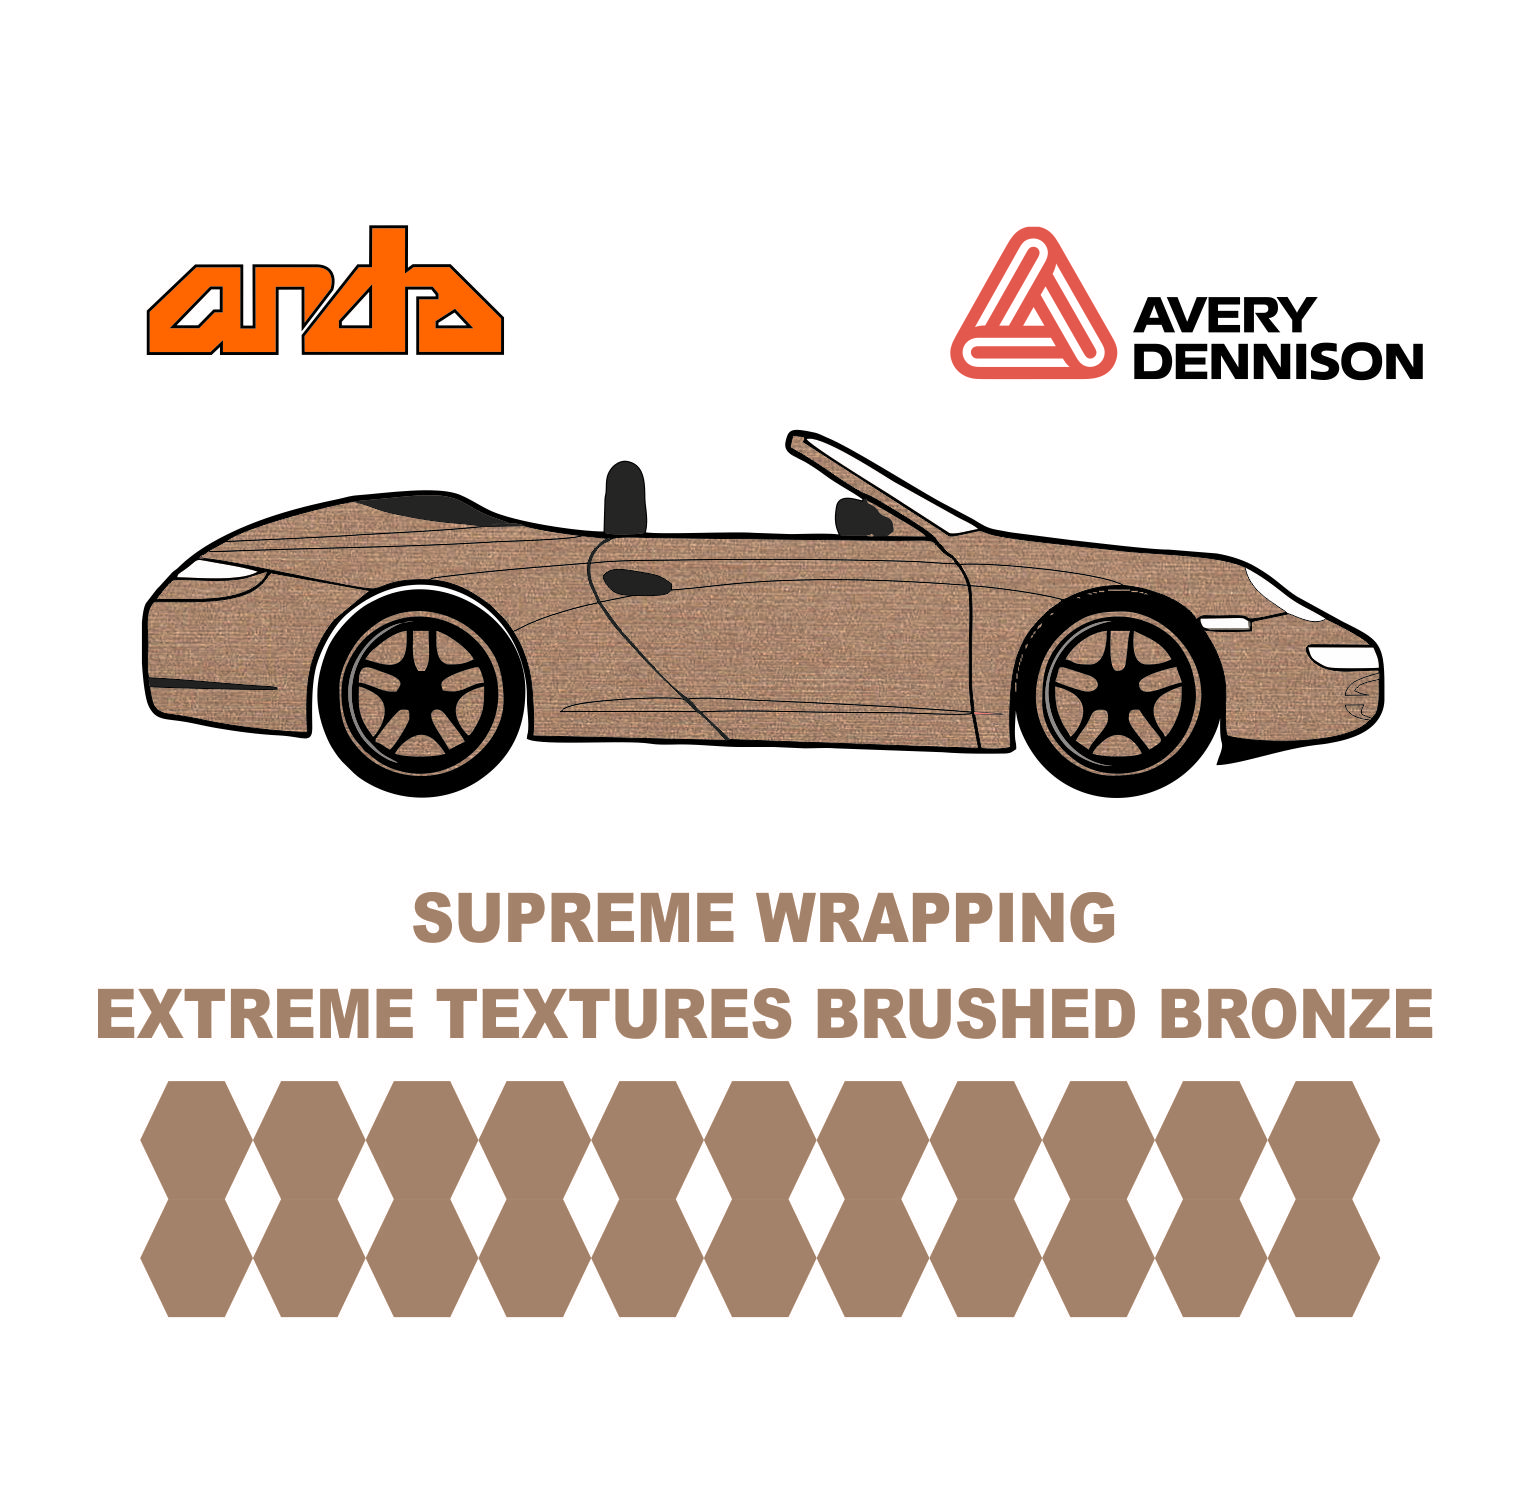 Avery Dennison- SWF Extreme Textures Brushed Bronze 1